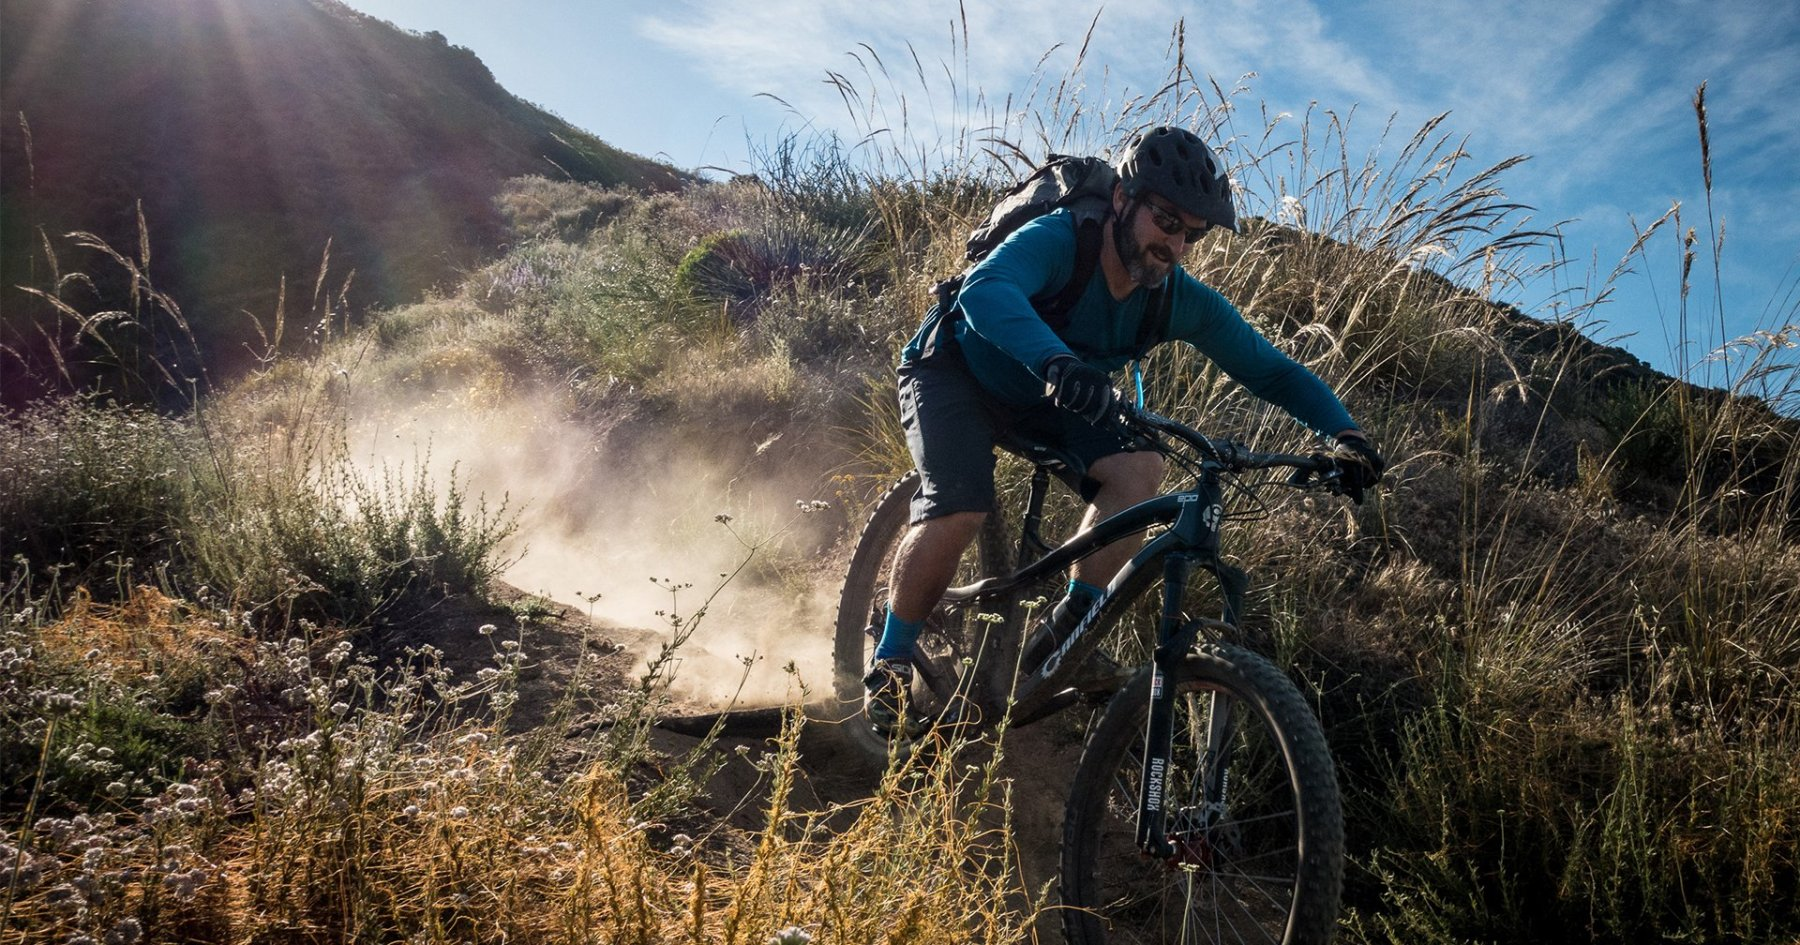 A Beginner's Guide to Mountain Biking in LA